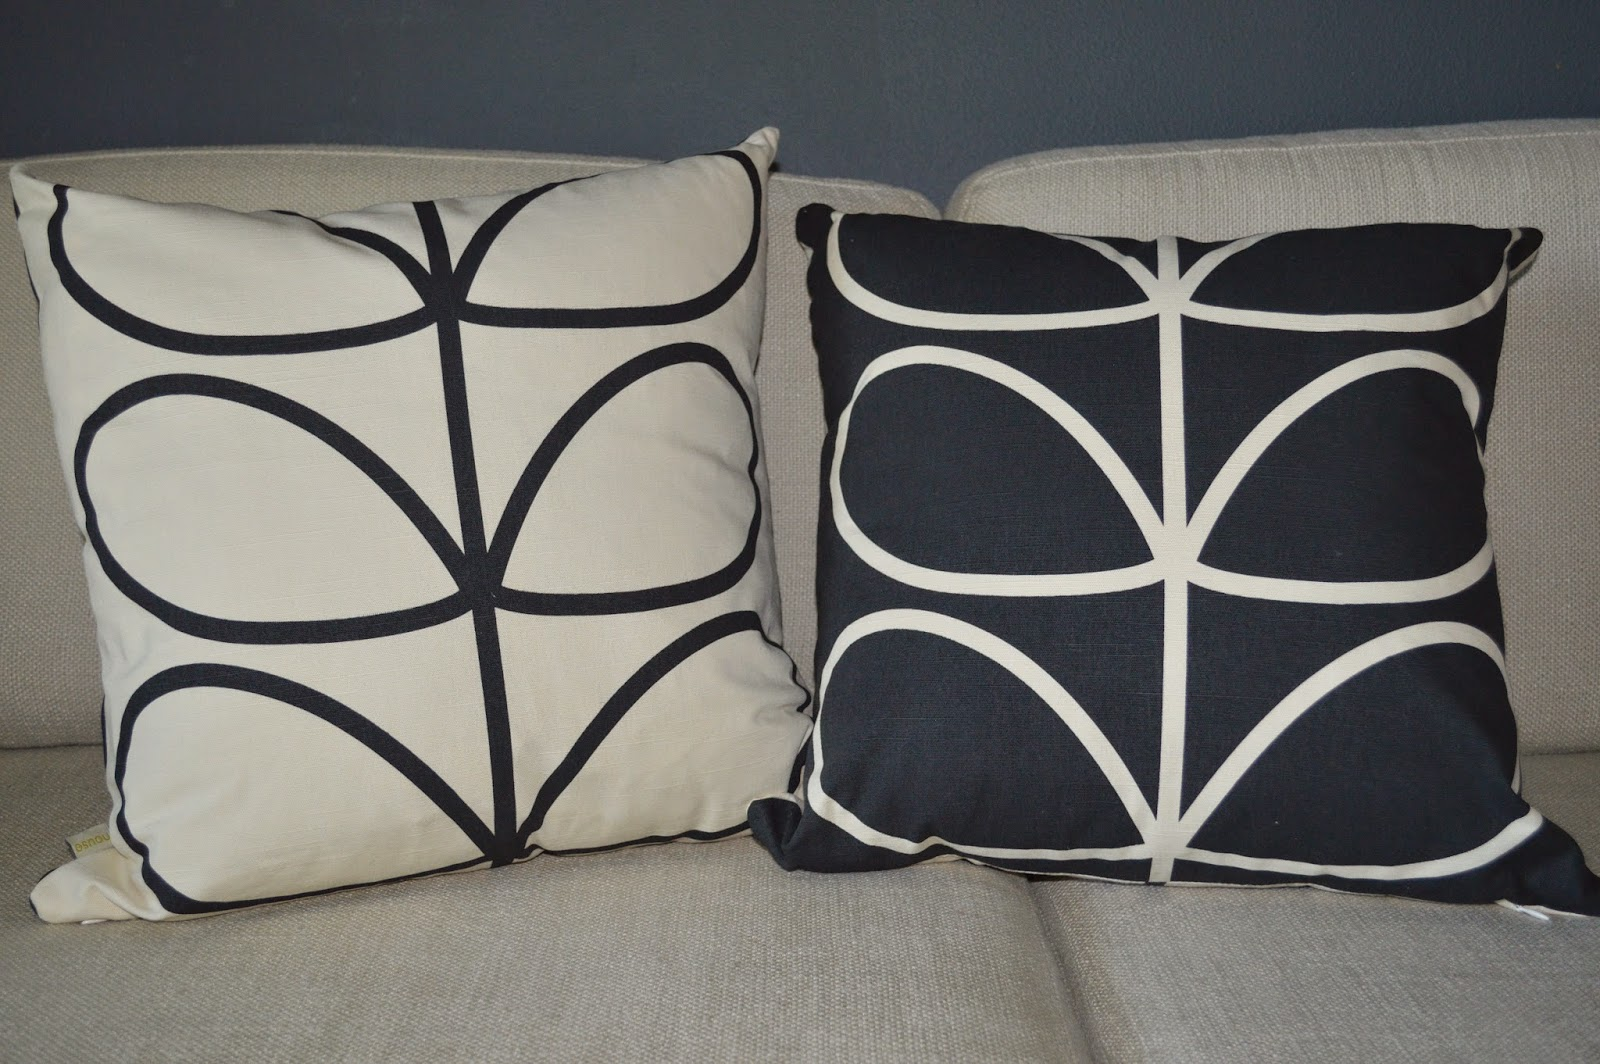 I Finally Purchased A Set Of Orla Kiely Pillows Got The Slate Colorway Which Has What Ears To Be Black At Least Me Anyway Background With